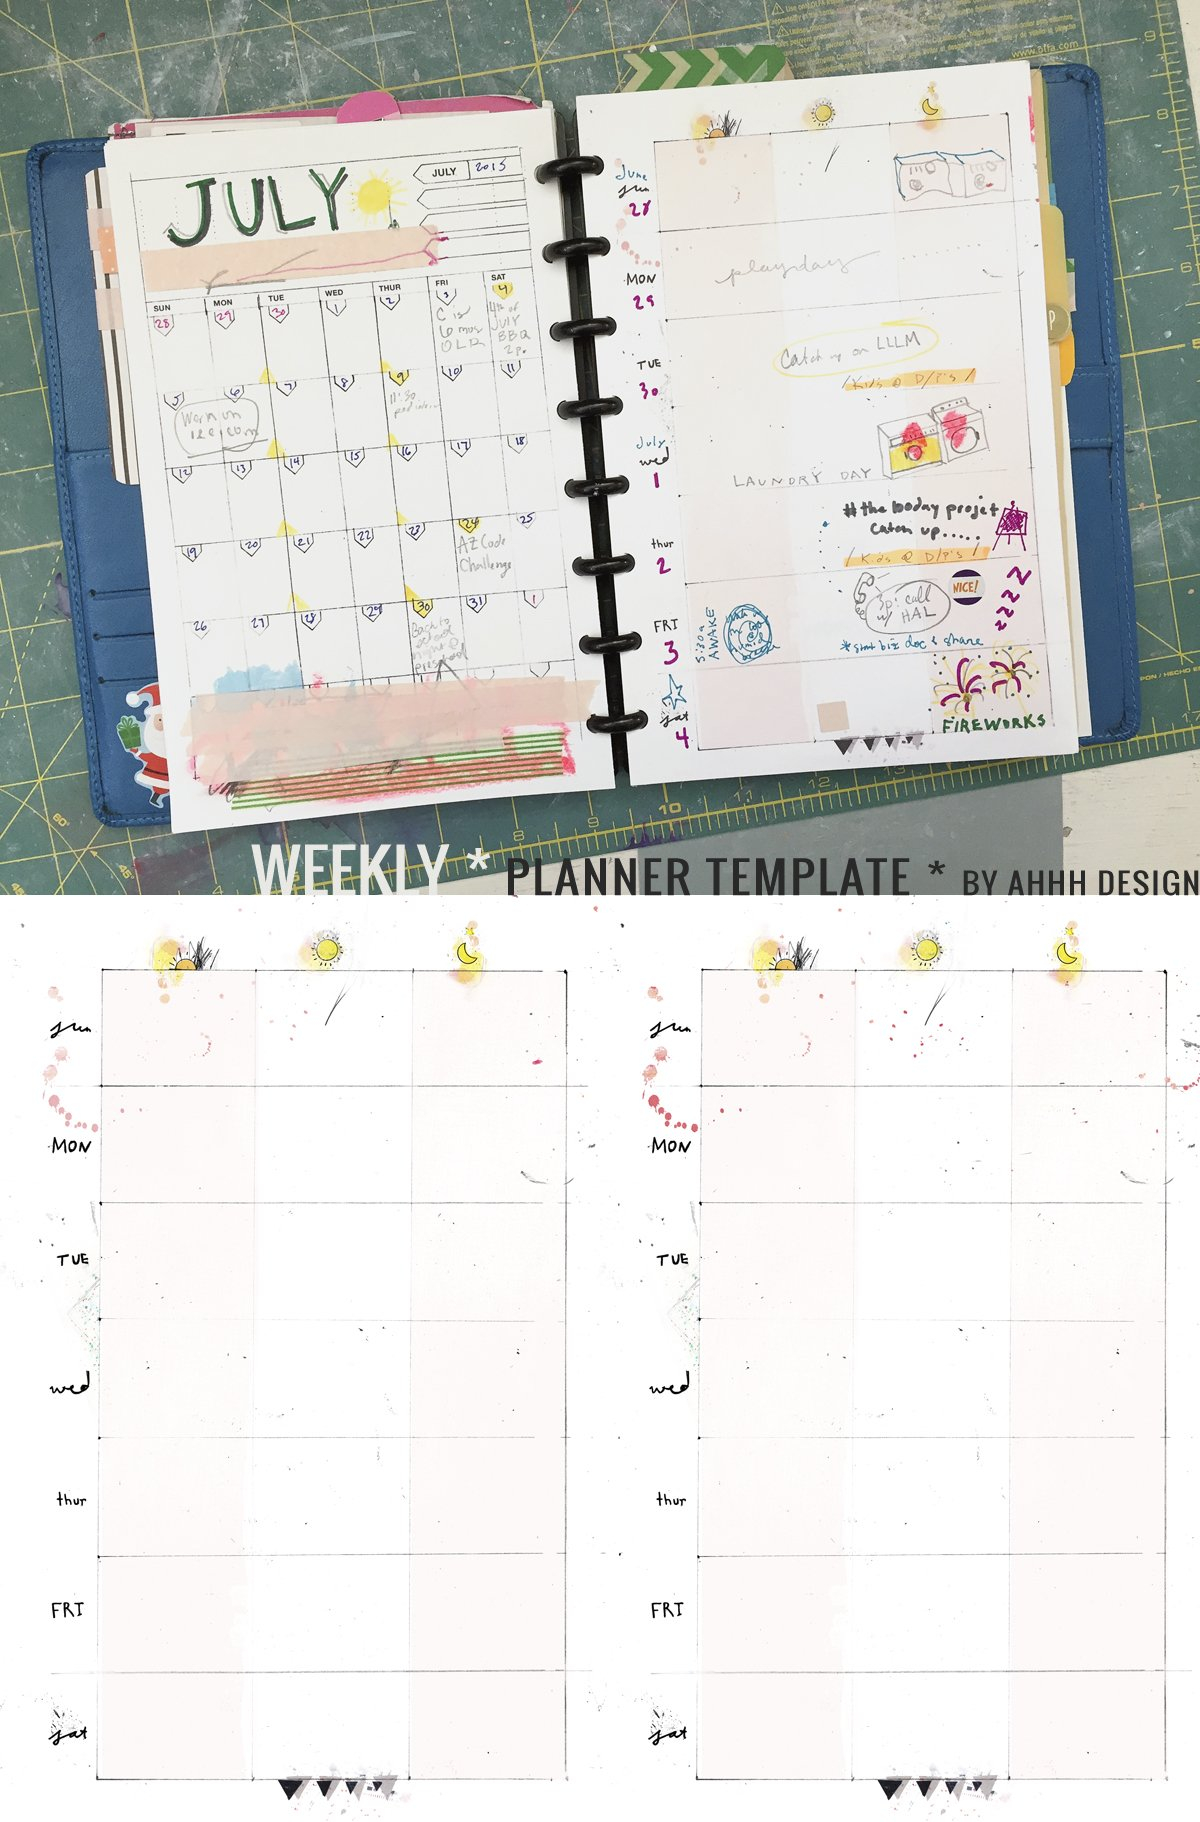 Diy Planner Archives ⋆ Amanda Hawkins | Ahhh Designamanda Show Me Monthly Calendars With Agenda Pages That Are 5.5X8.5